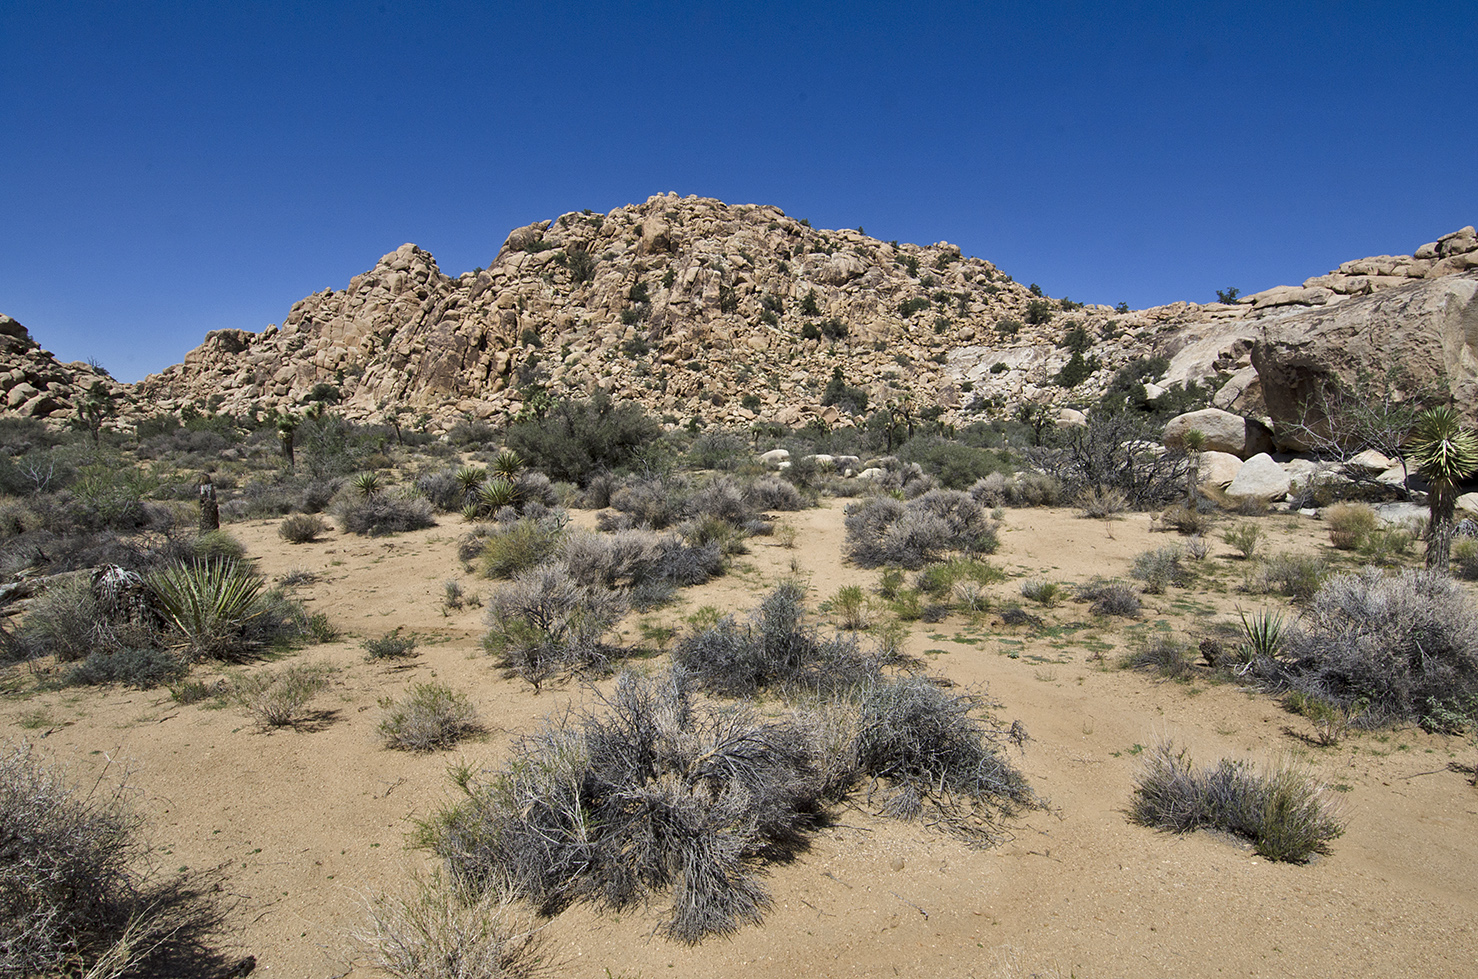 Solitary hiking across the desert, haven't seen a soul since I started the trek.